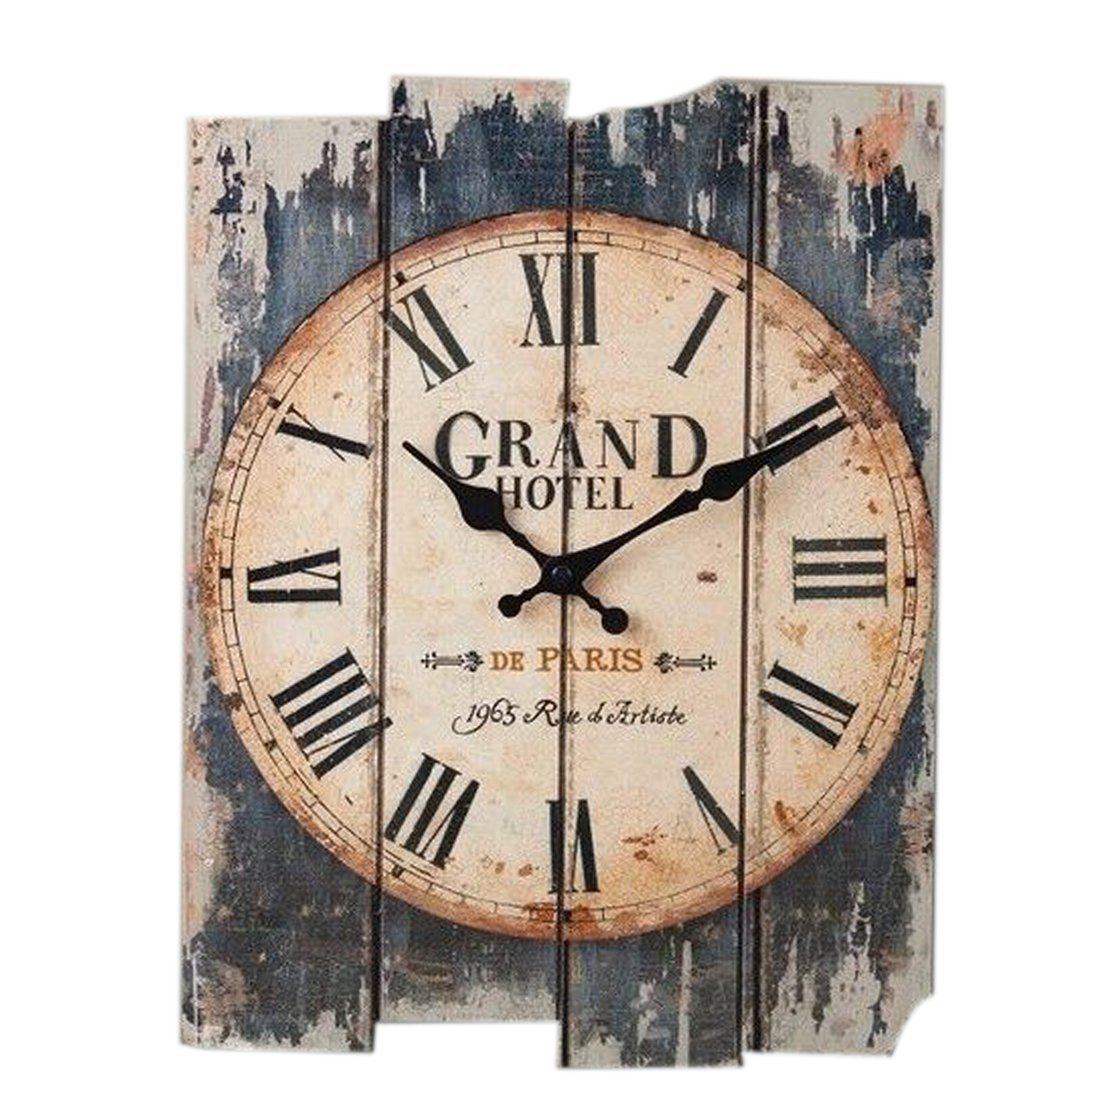 Wall Clock Vintage, Petforu 30x40cm Silent Clock Rectangle [Wooden] Roman Numeral Design - GRAND HOTEL